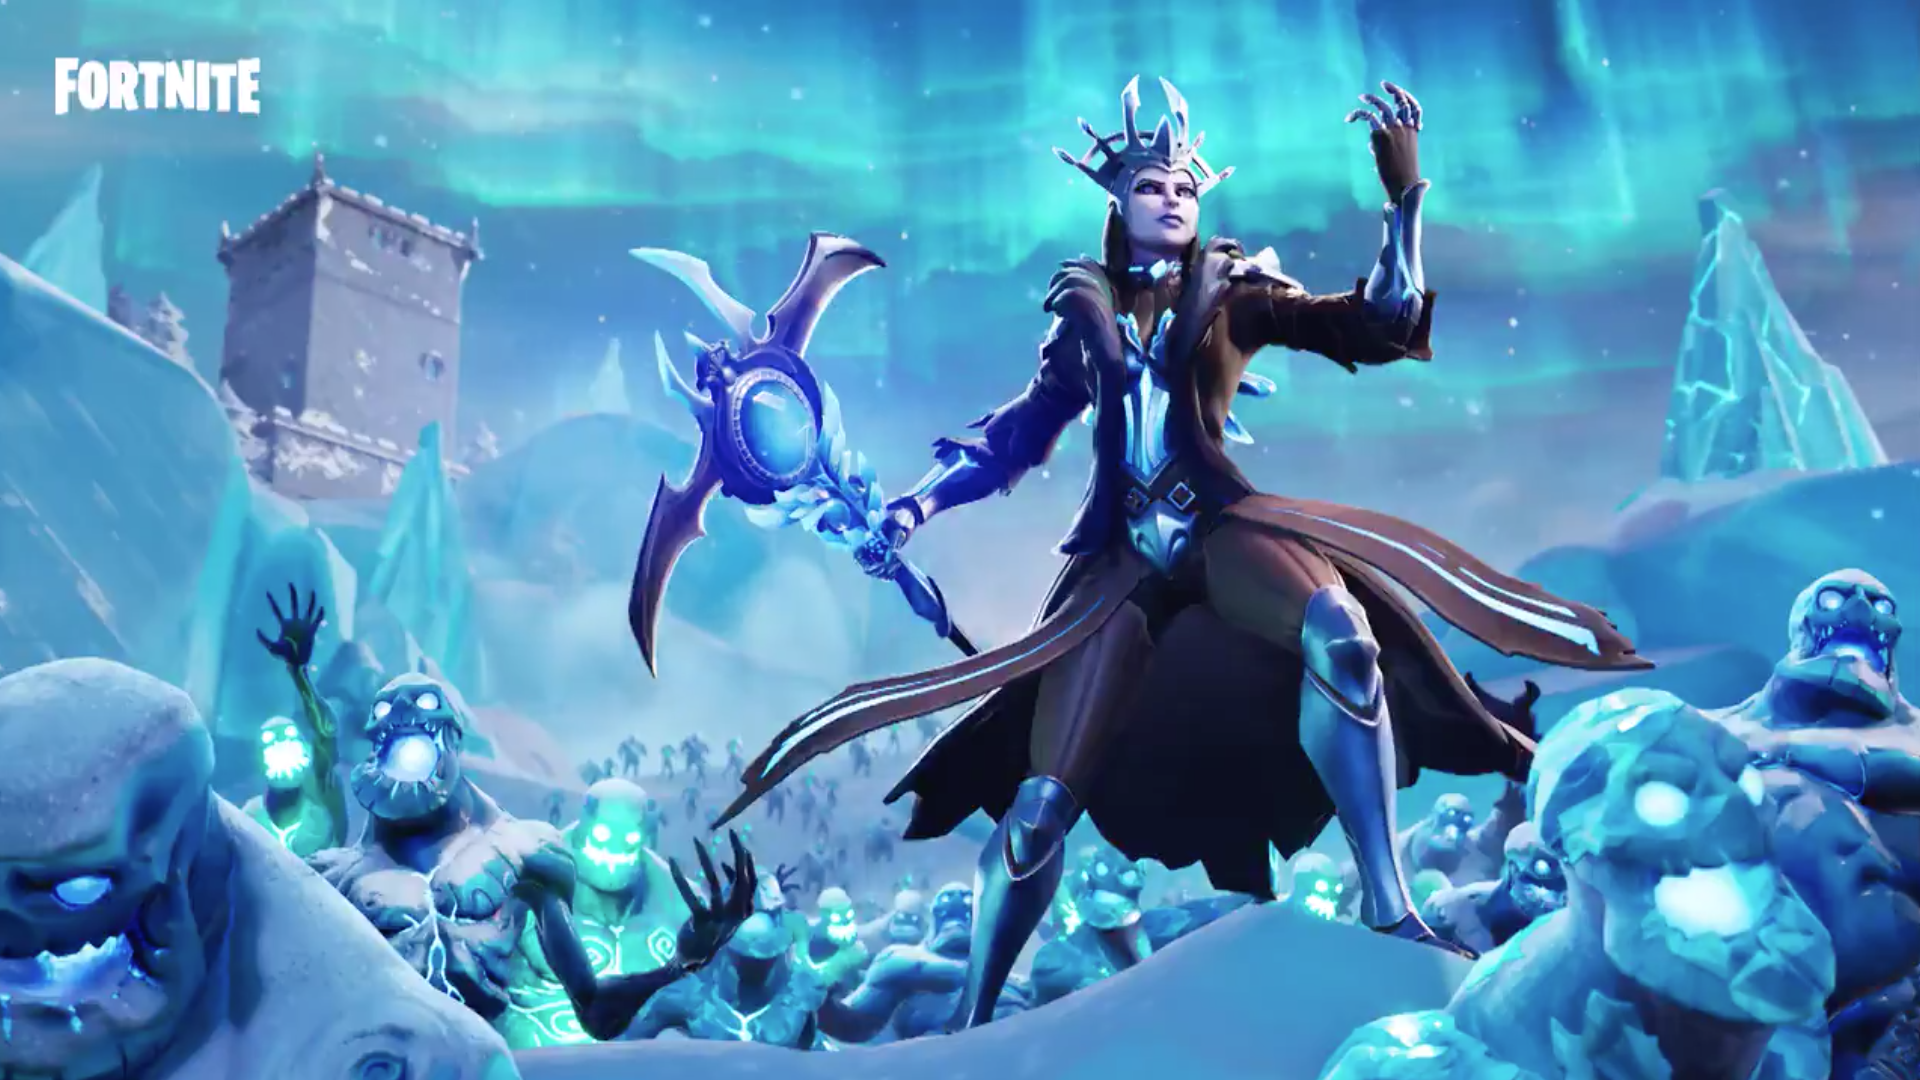 Fortnite's Ice Storm cometh, Ice King dumps blizzard on the whole